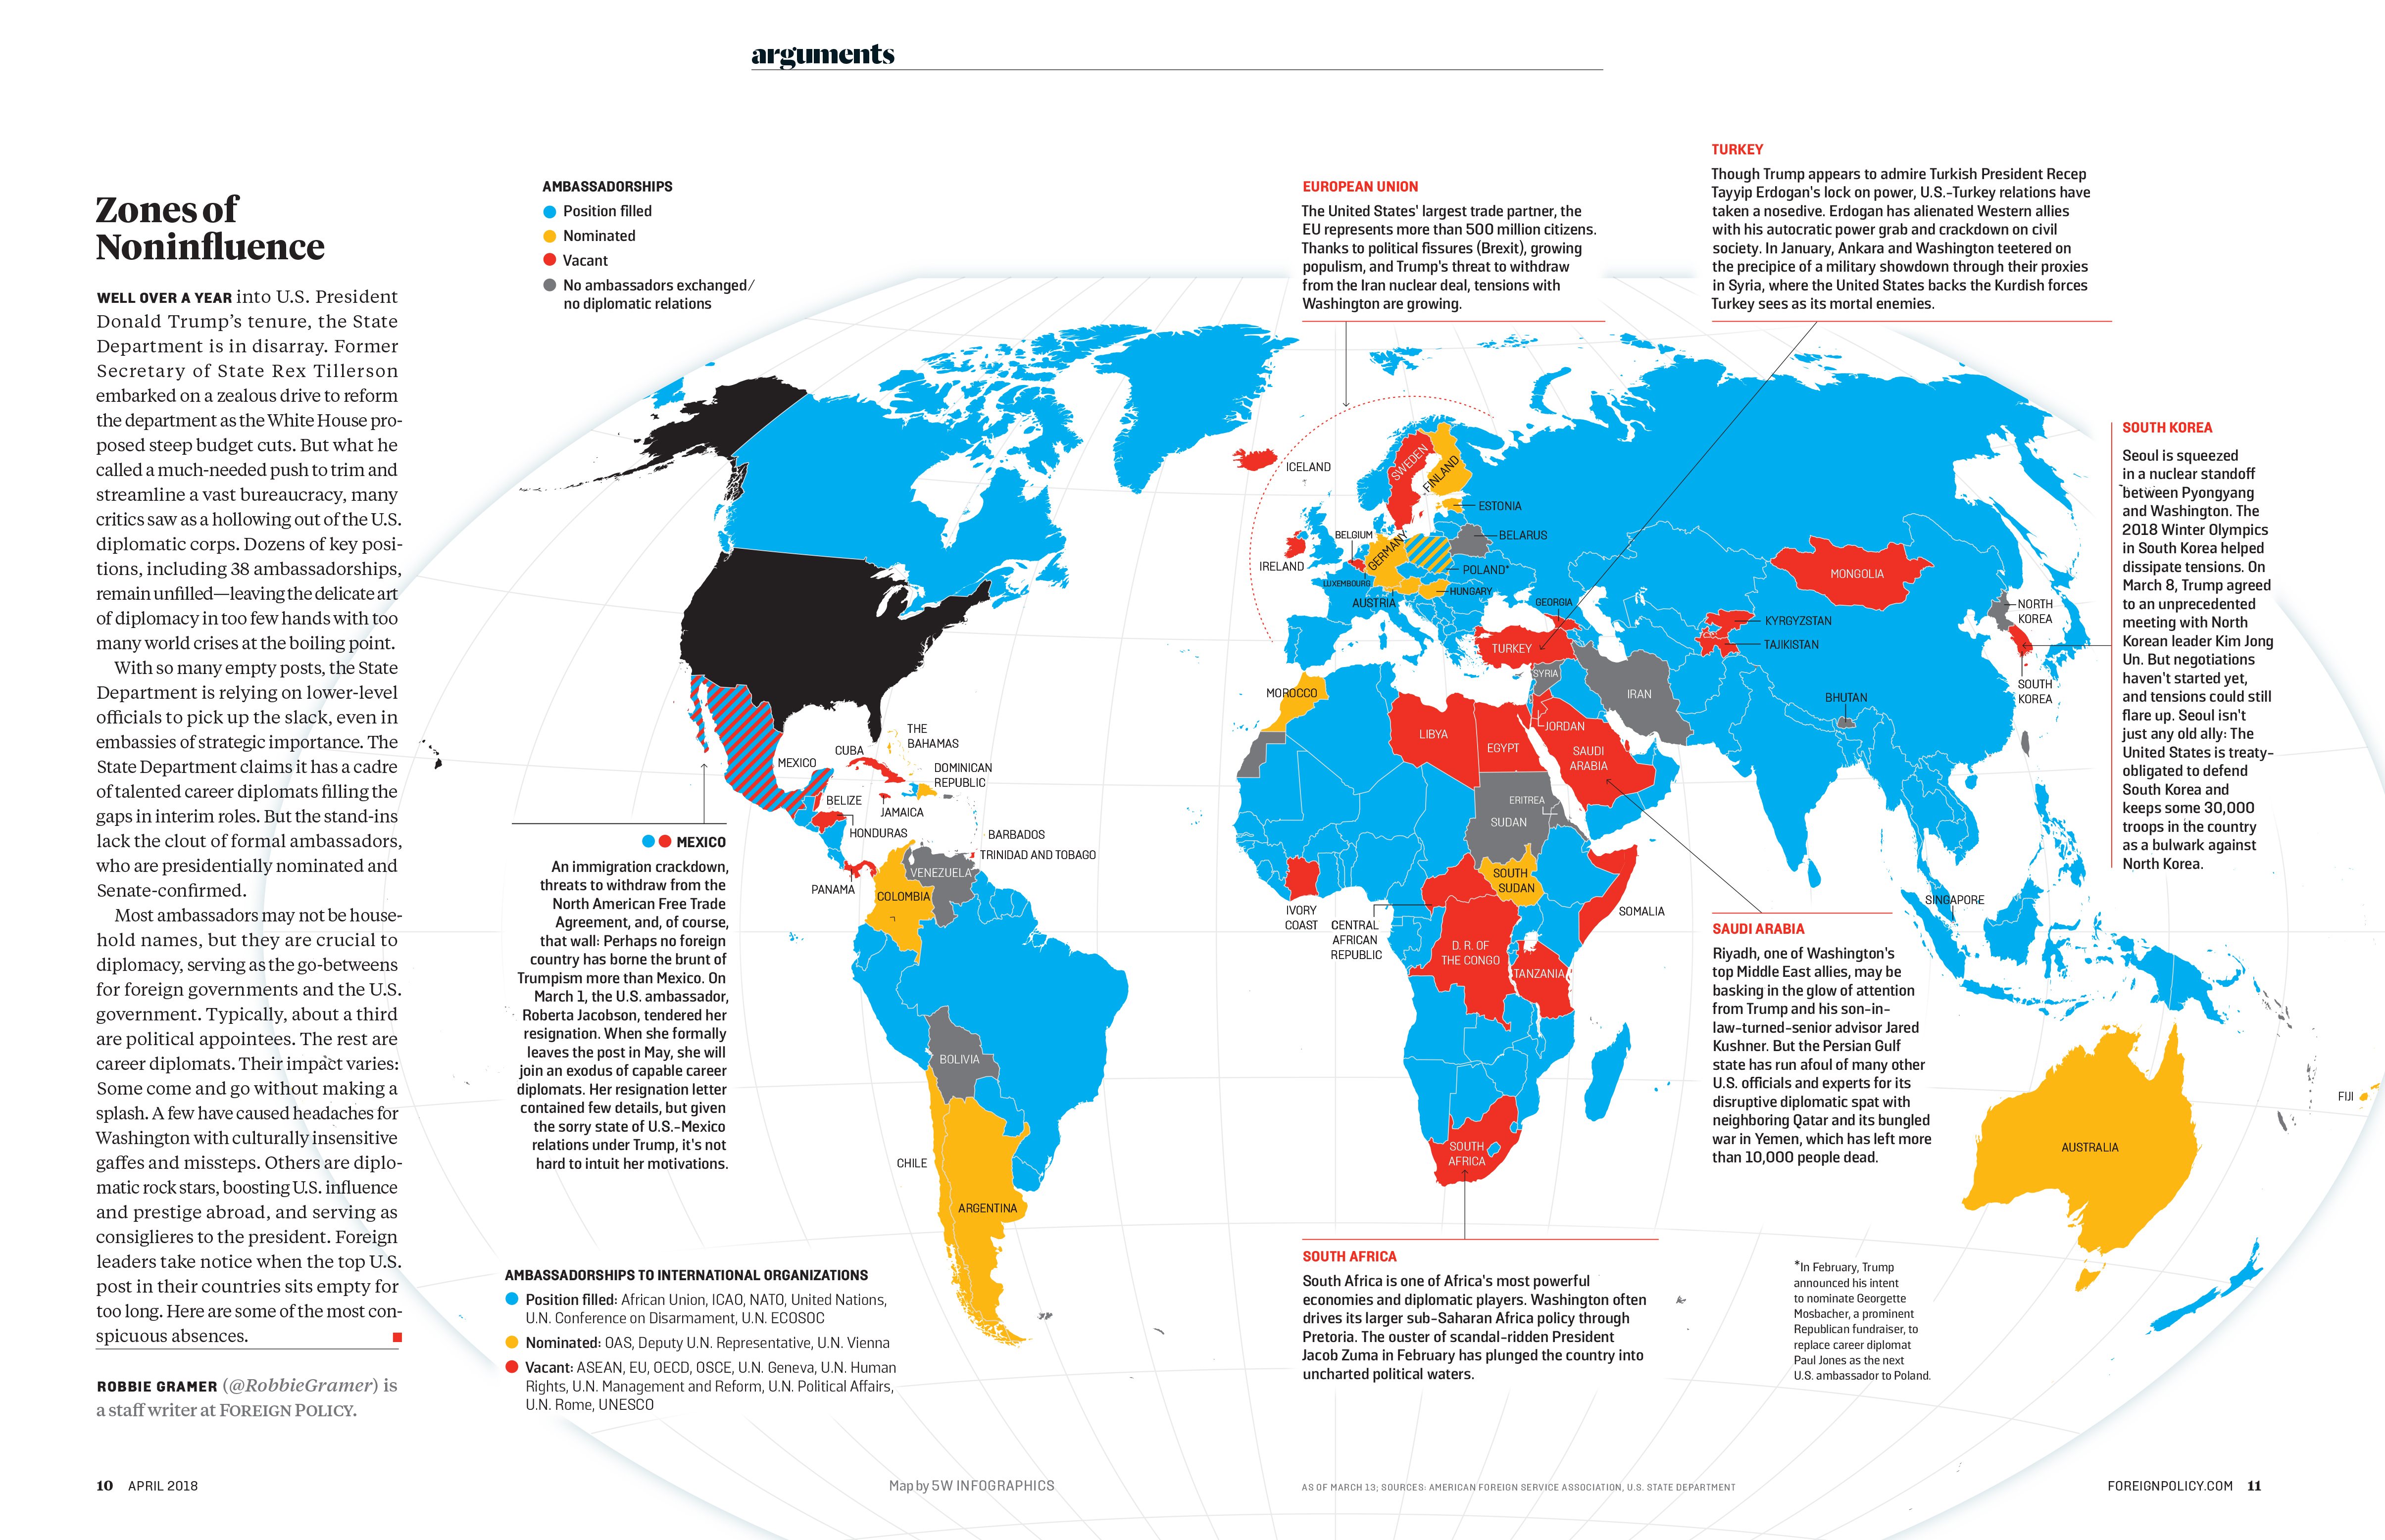 Zones of noninfluence new map for foreign policy magazine 5w blog well over a year into us president donald trumps tenure the state department is in disarray says the latest issue of foreign policy magazine publicscrutiny Images